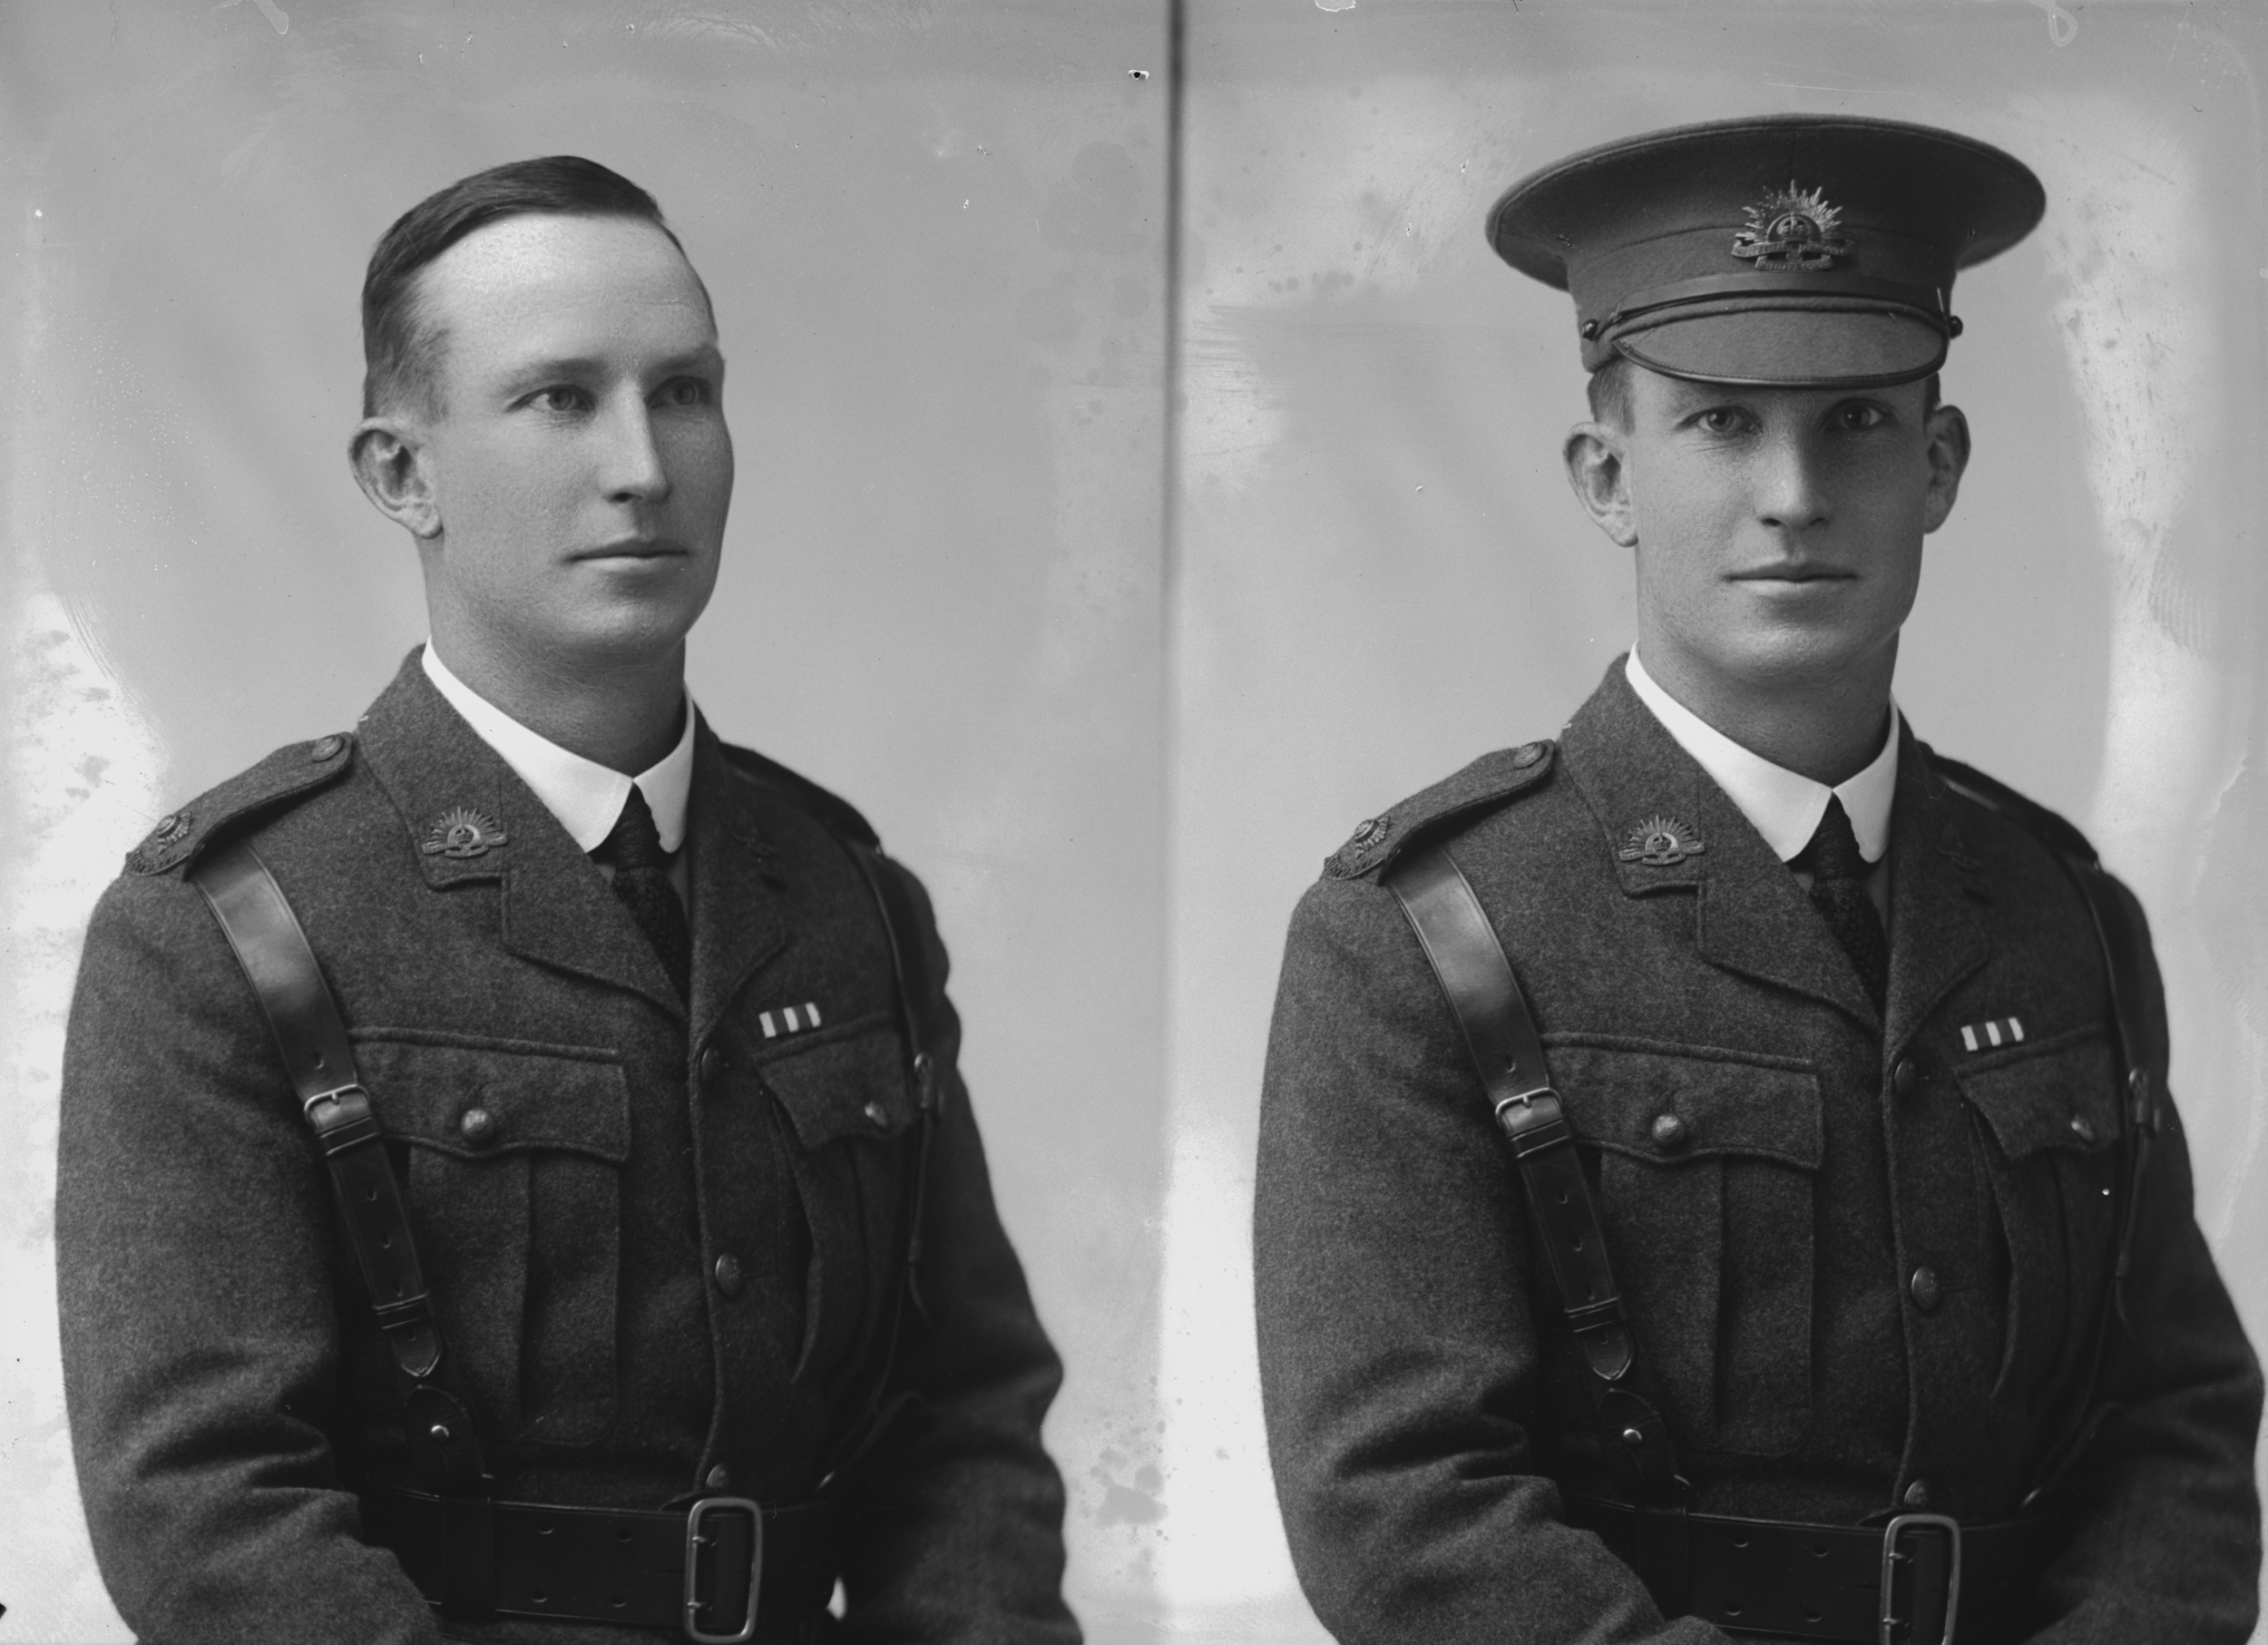 Photographed at the Dease Studio, 117 Barrack Street Perth WA Image courtesy of the State Library of Western Australia: 108012PD